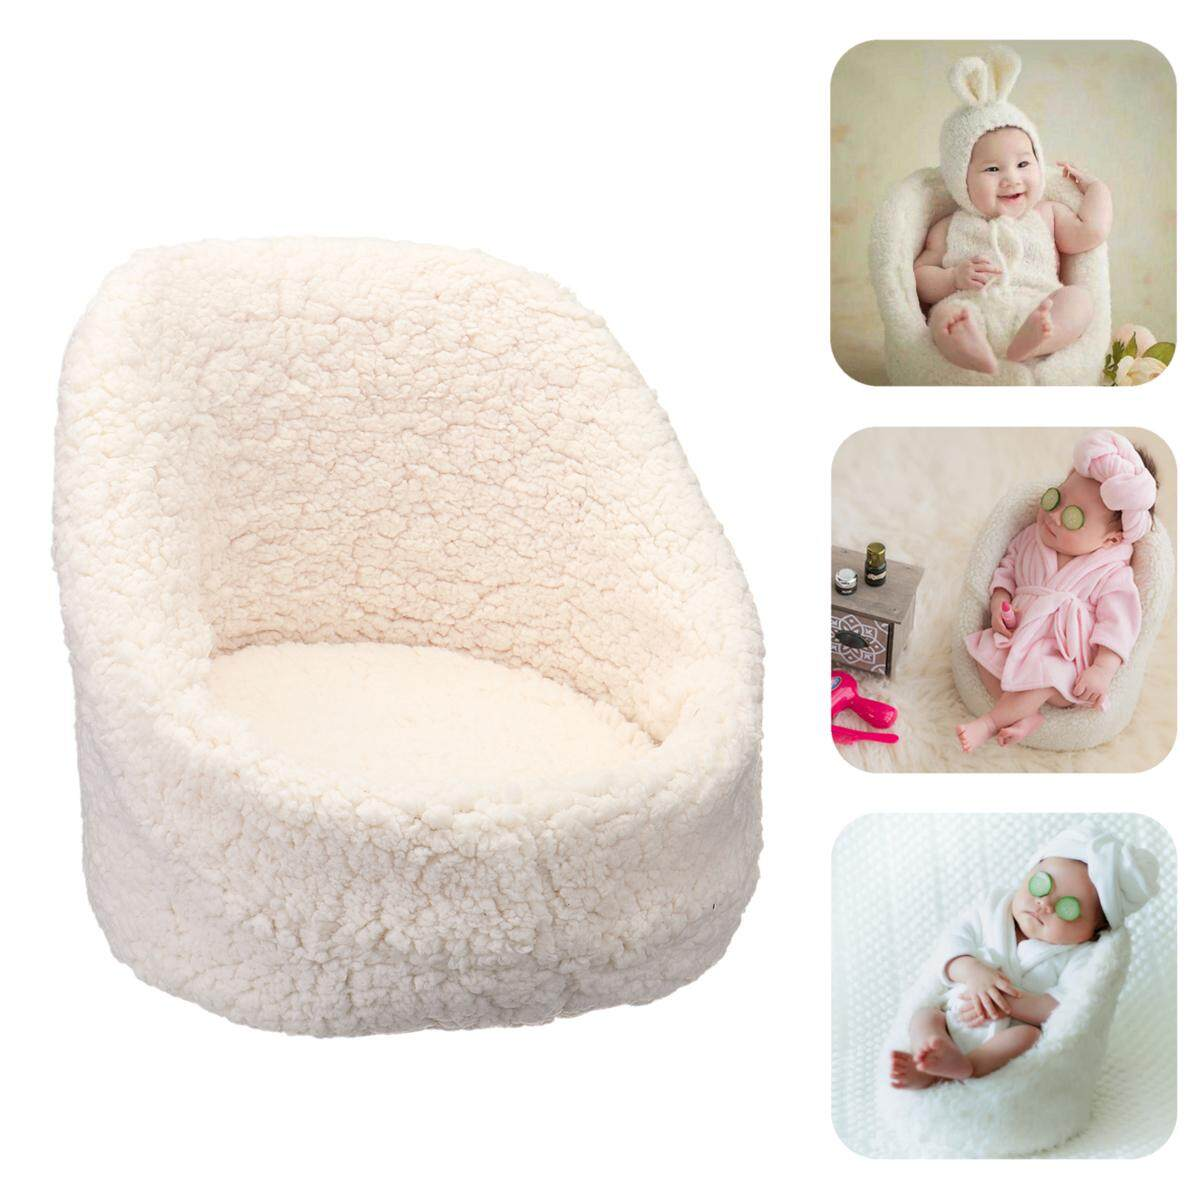 【free Shipping + Flash Deal】photo Props Small Sofa Seat Photography Shoot Aid For Newborn Baby Boys Girls By Freebang.